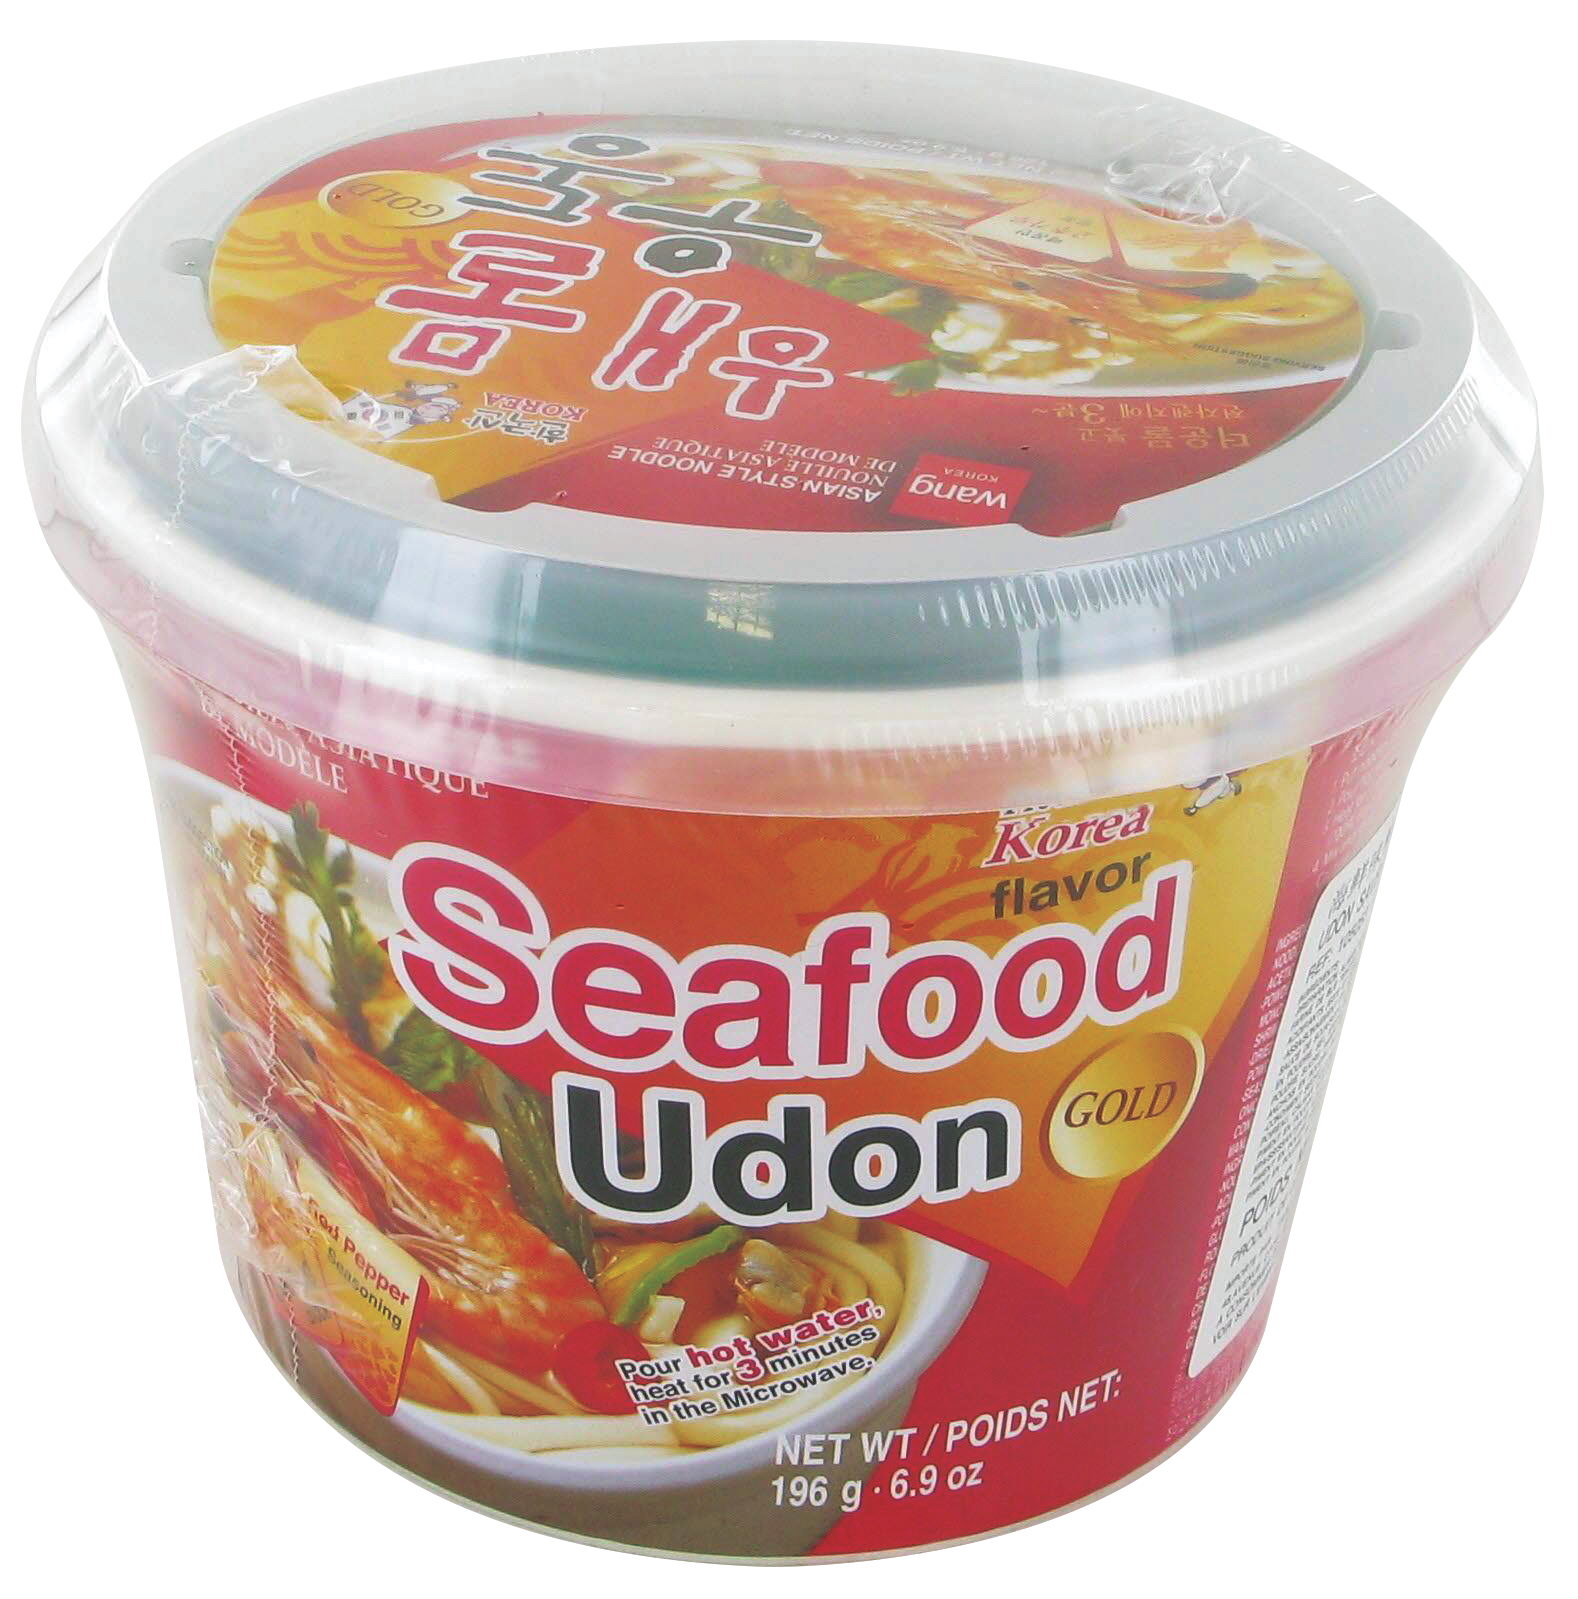 Udon saveur fruits de mer, Wang (196 g)